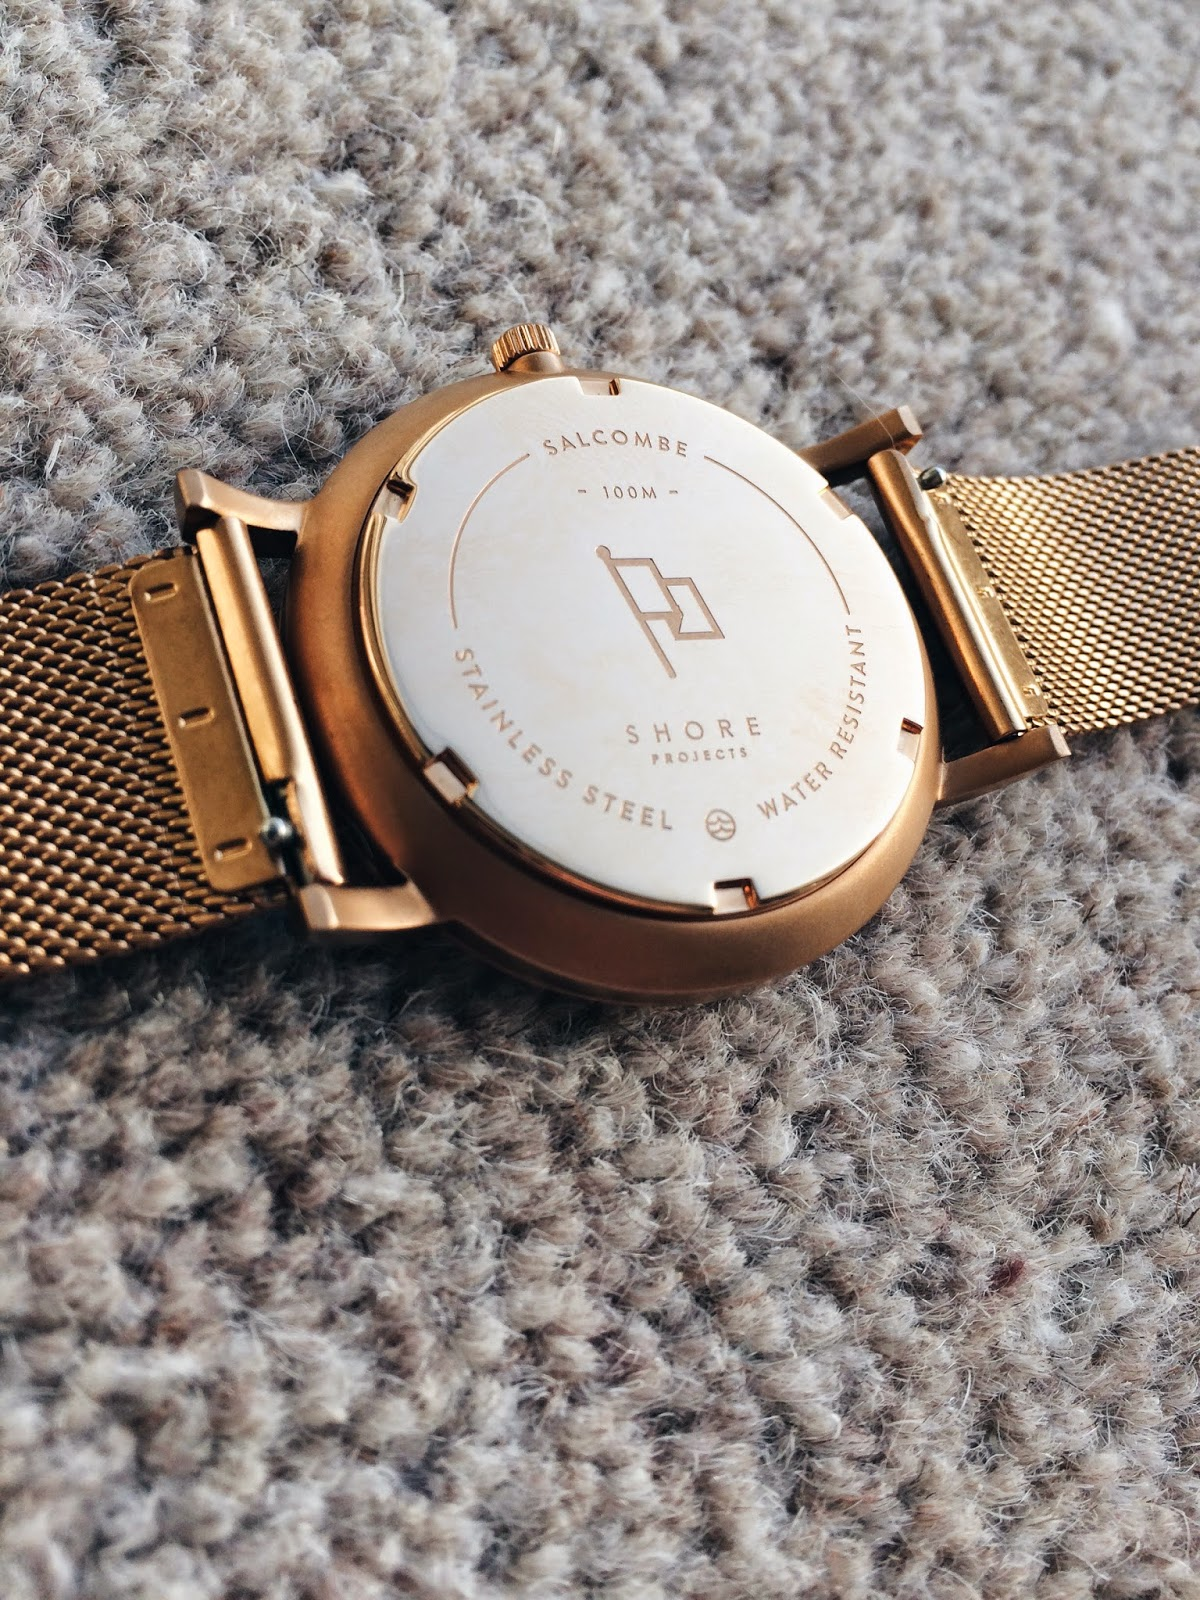 shore projects, shoreprojects, watches, british, seaside, accessories, fashion, daily watches, loveluxxe, review, launch, salcome, project 1 , project 2,